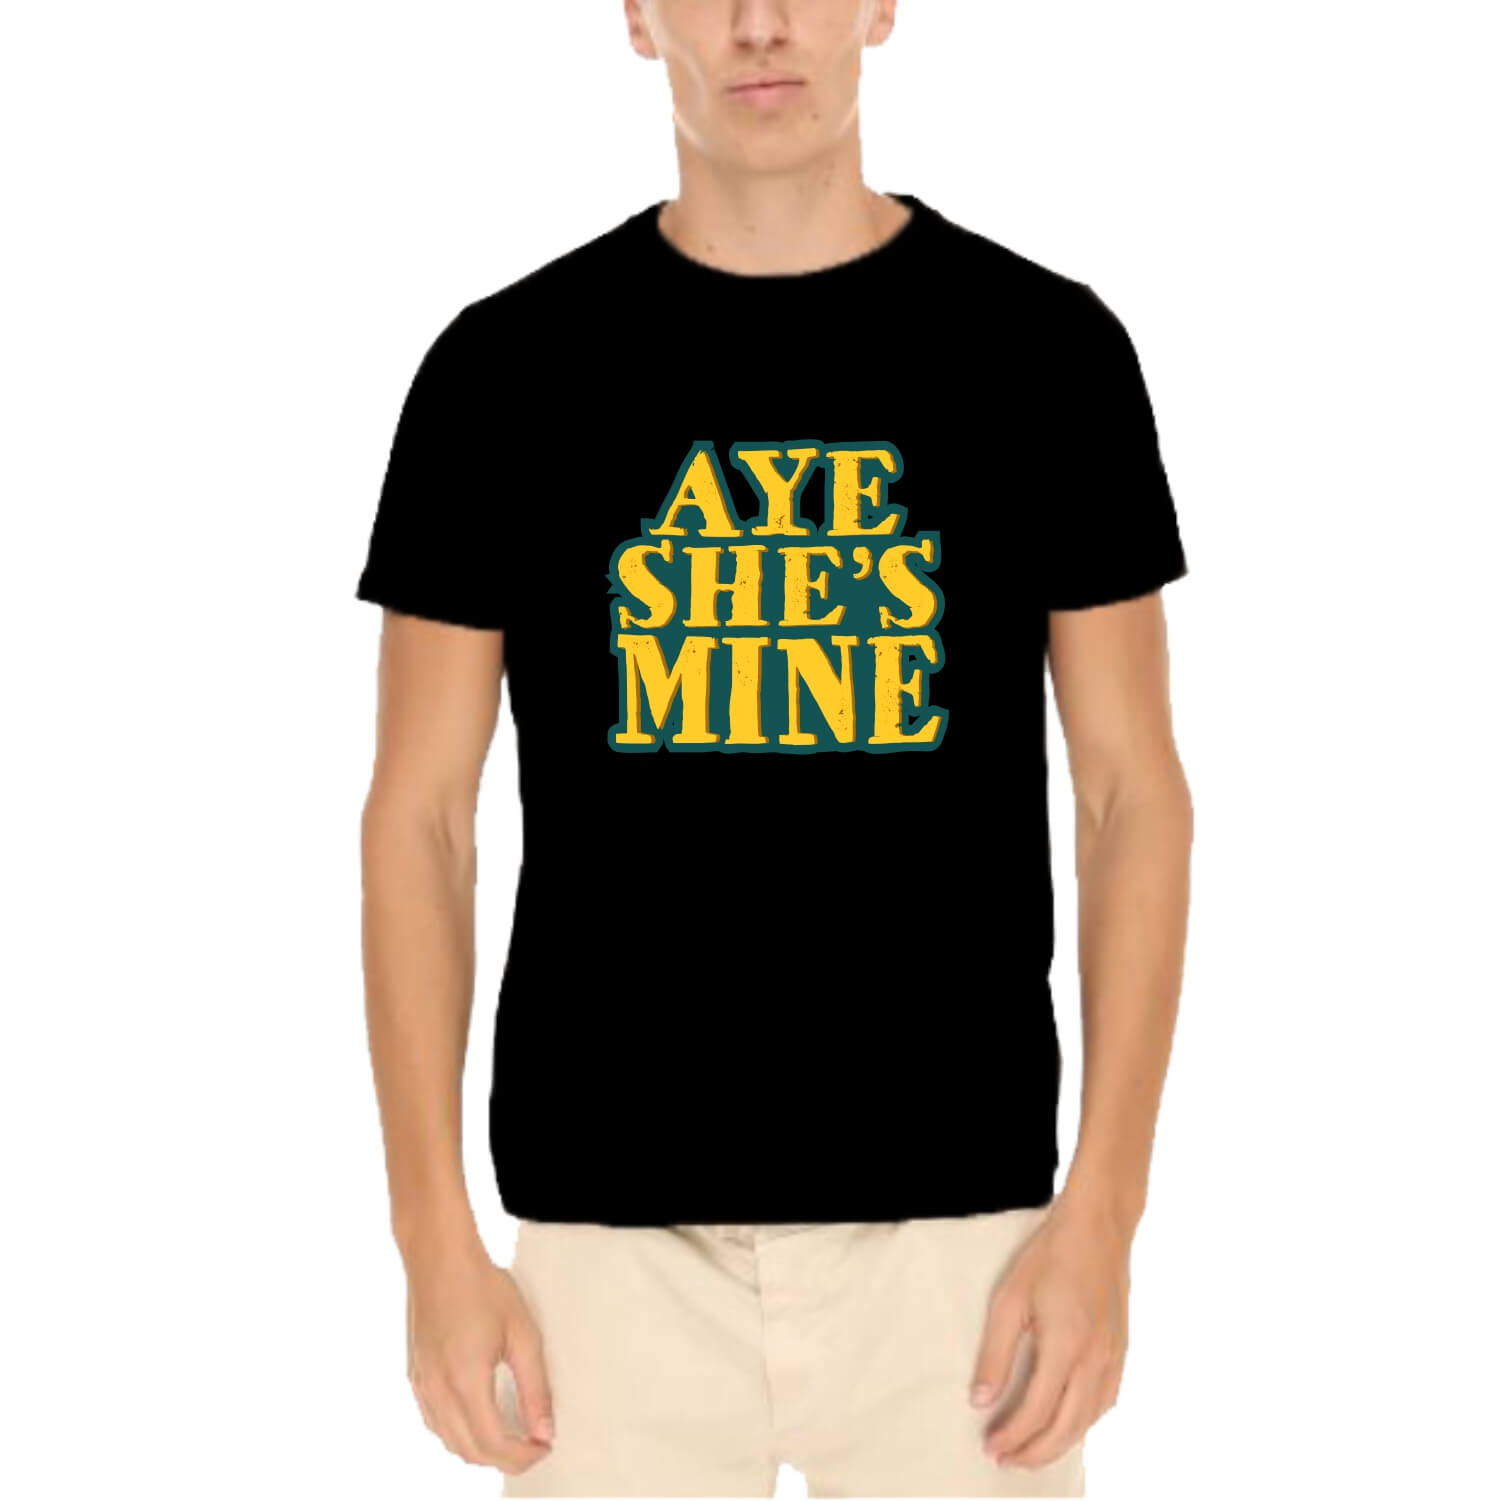 fe326b9299 T-Shirt for Men. Available options: Aye She's Mine T-Shirt for Men –  ₹549.00. Aye She's Mine ...